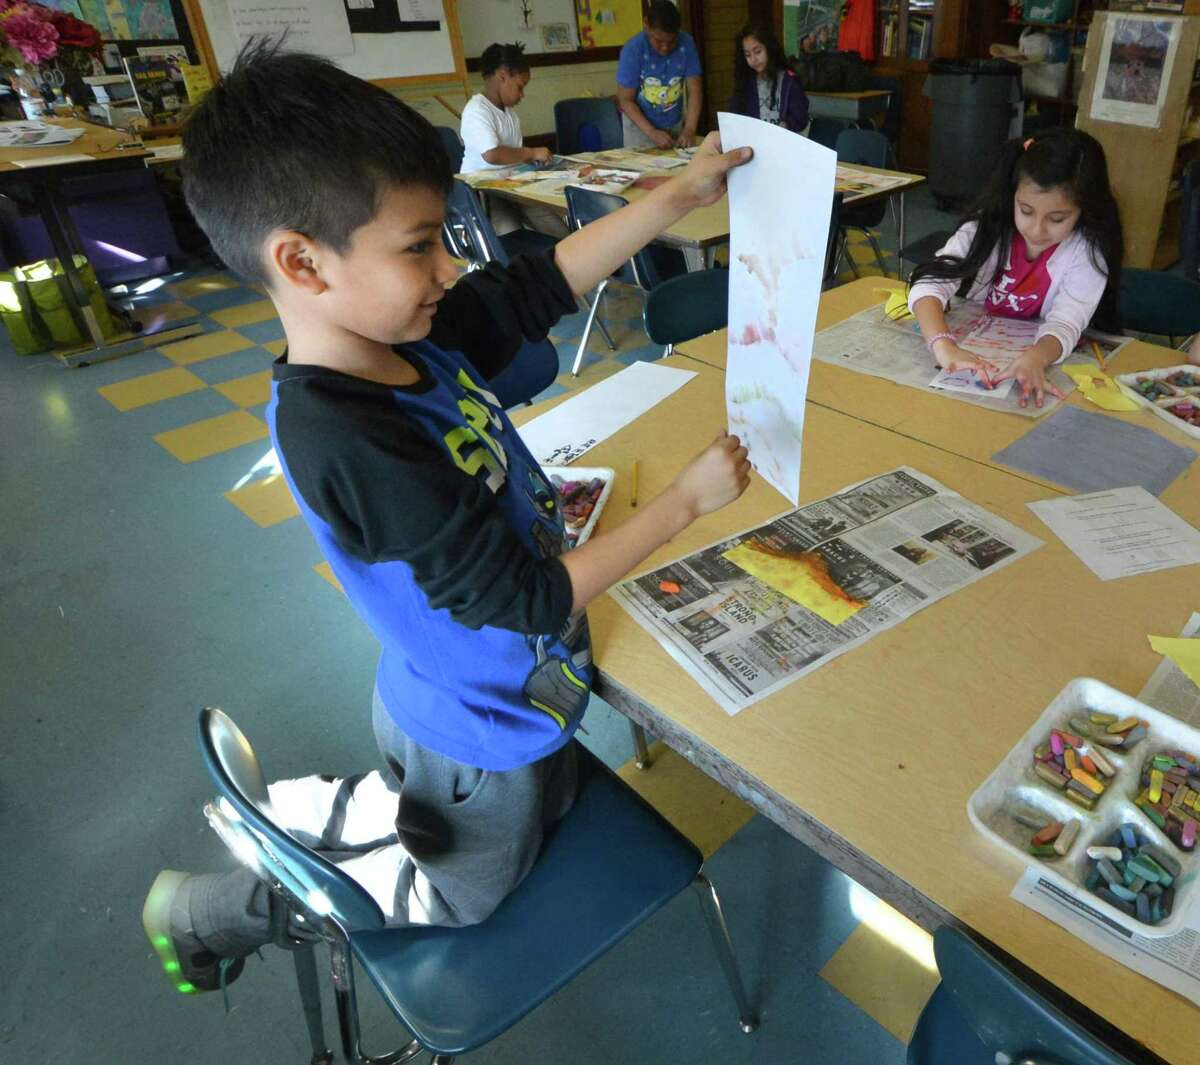 Jefferson Tacuro checks his progress on his traditional Asian landscape during Rhonda Siletto's third-grade art class at Tracey Elementary School on Wednesday, Feb.21 in Norwalk.